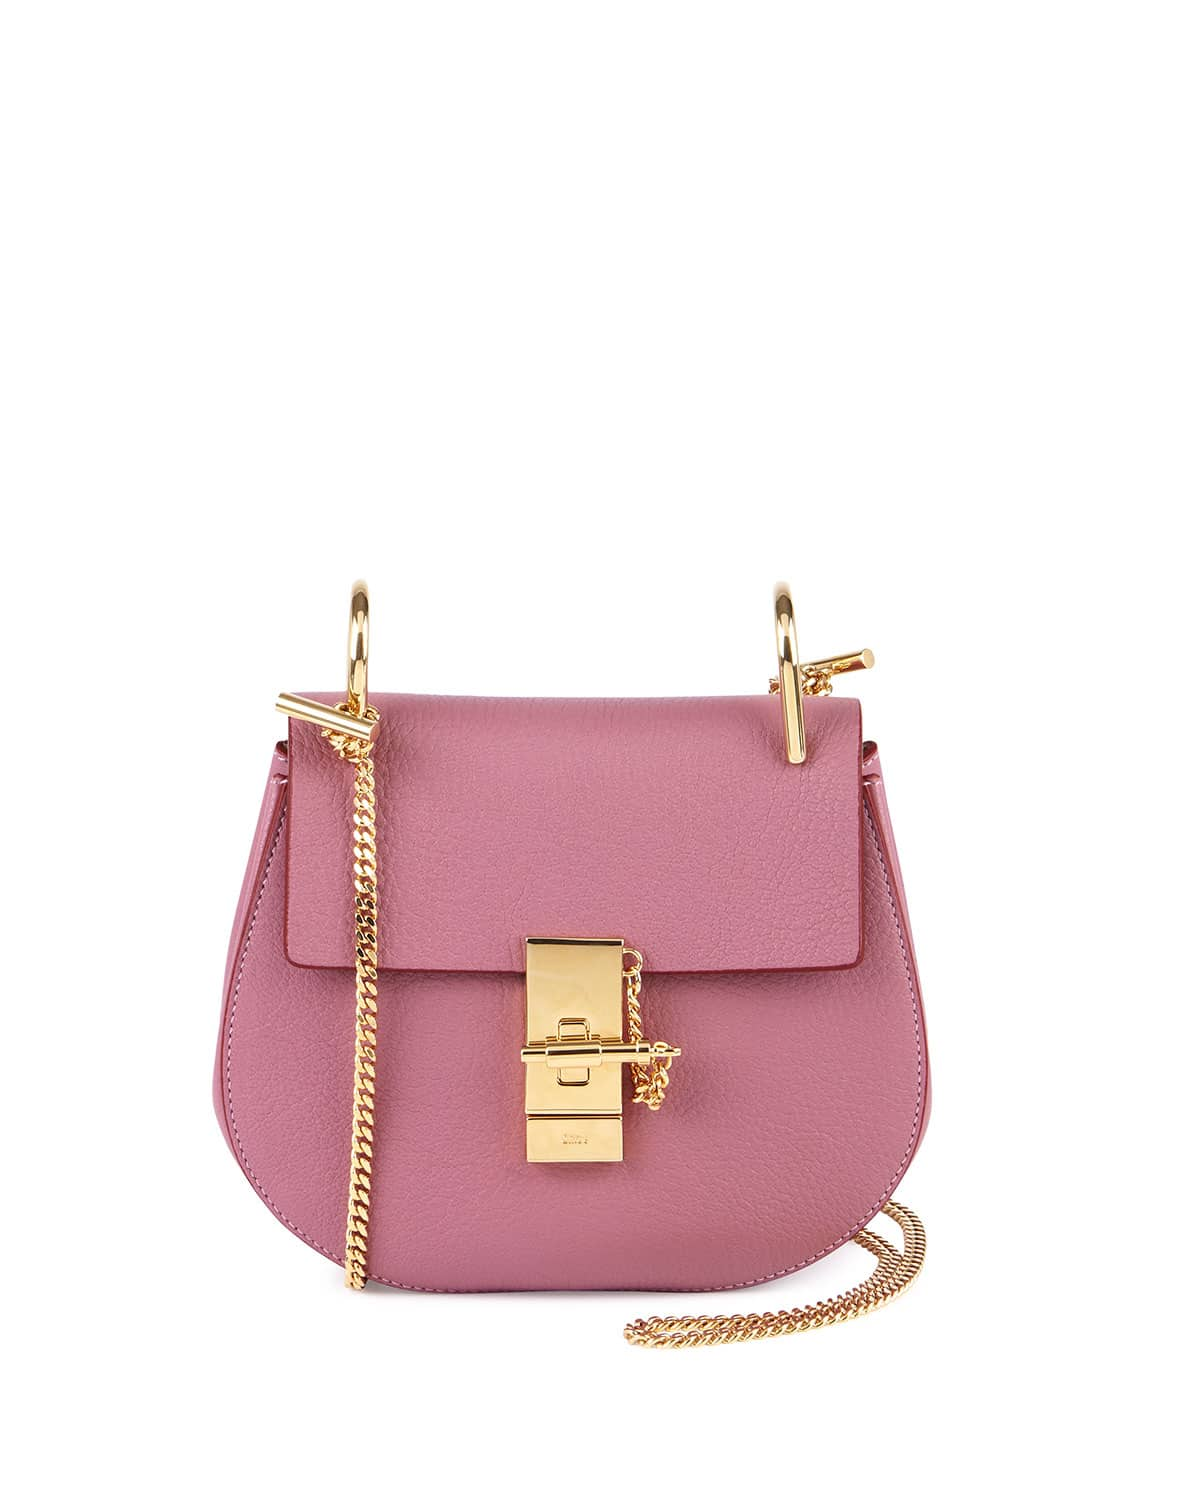 replica handbags chloe - Chloe Spring/Summer 2015 Bag Collection Featuring the Faye Bag ...